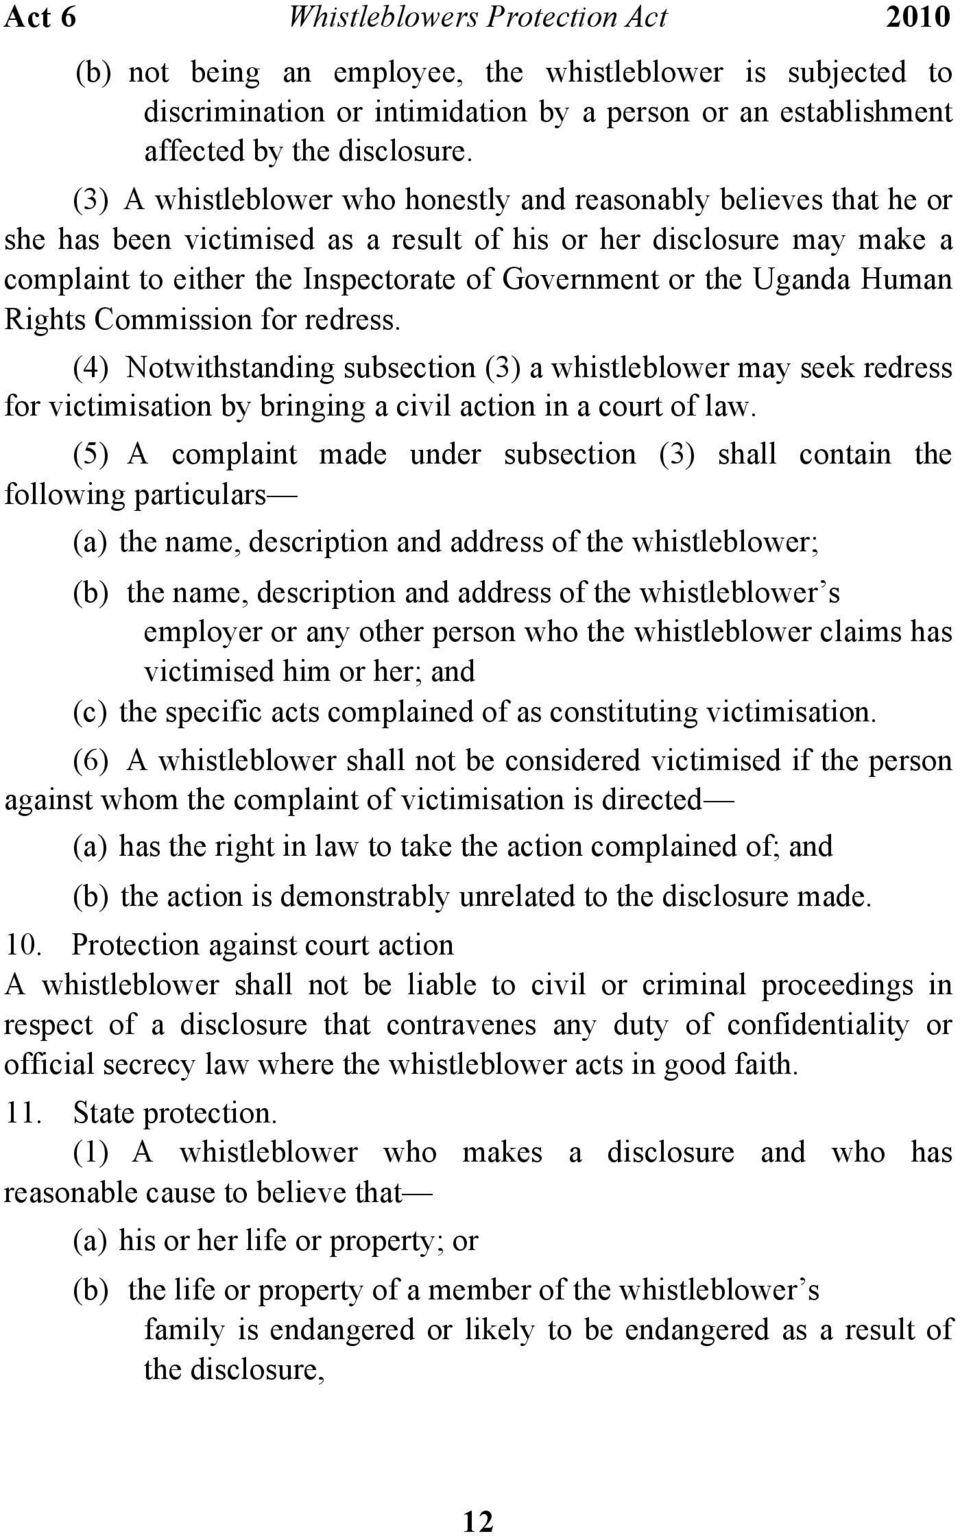 Uganda Human Rights Commission for redress. (4) Notwithstanding subsection (3) a whistleblower may seek redress for victimisation by bringing a civil action in a court of law.